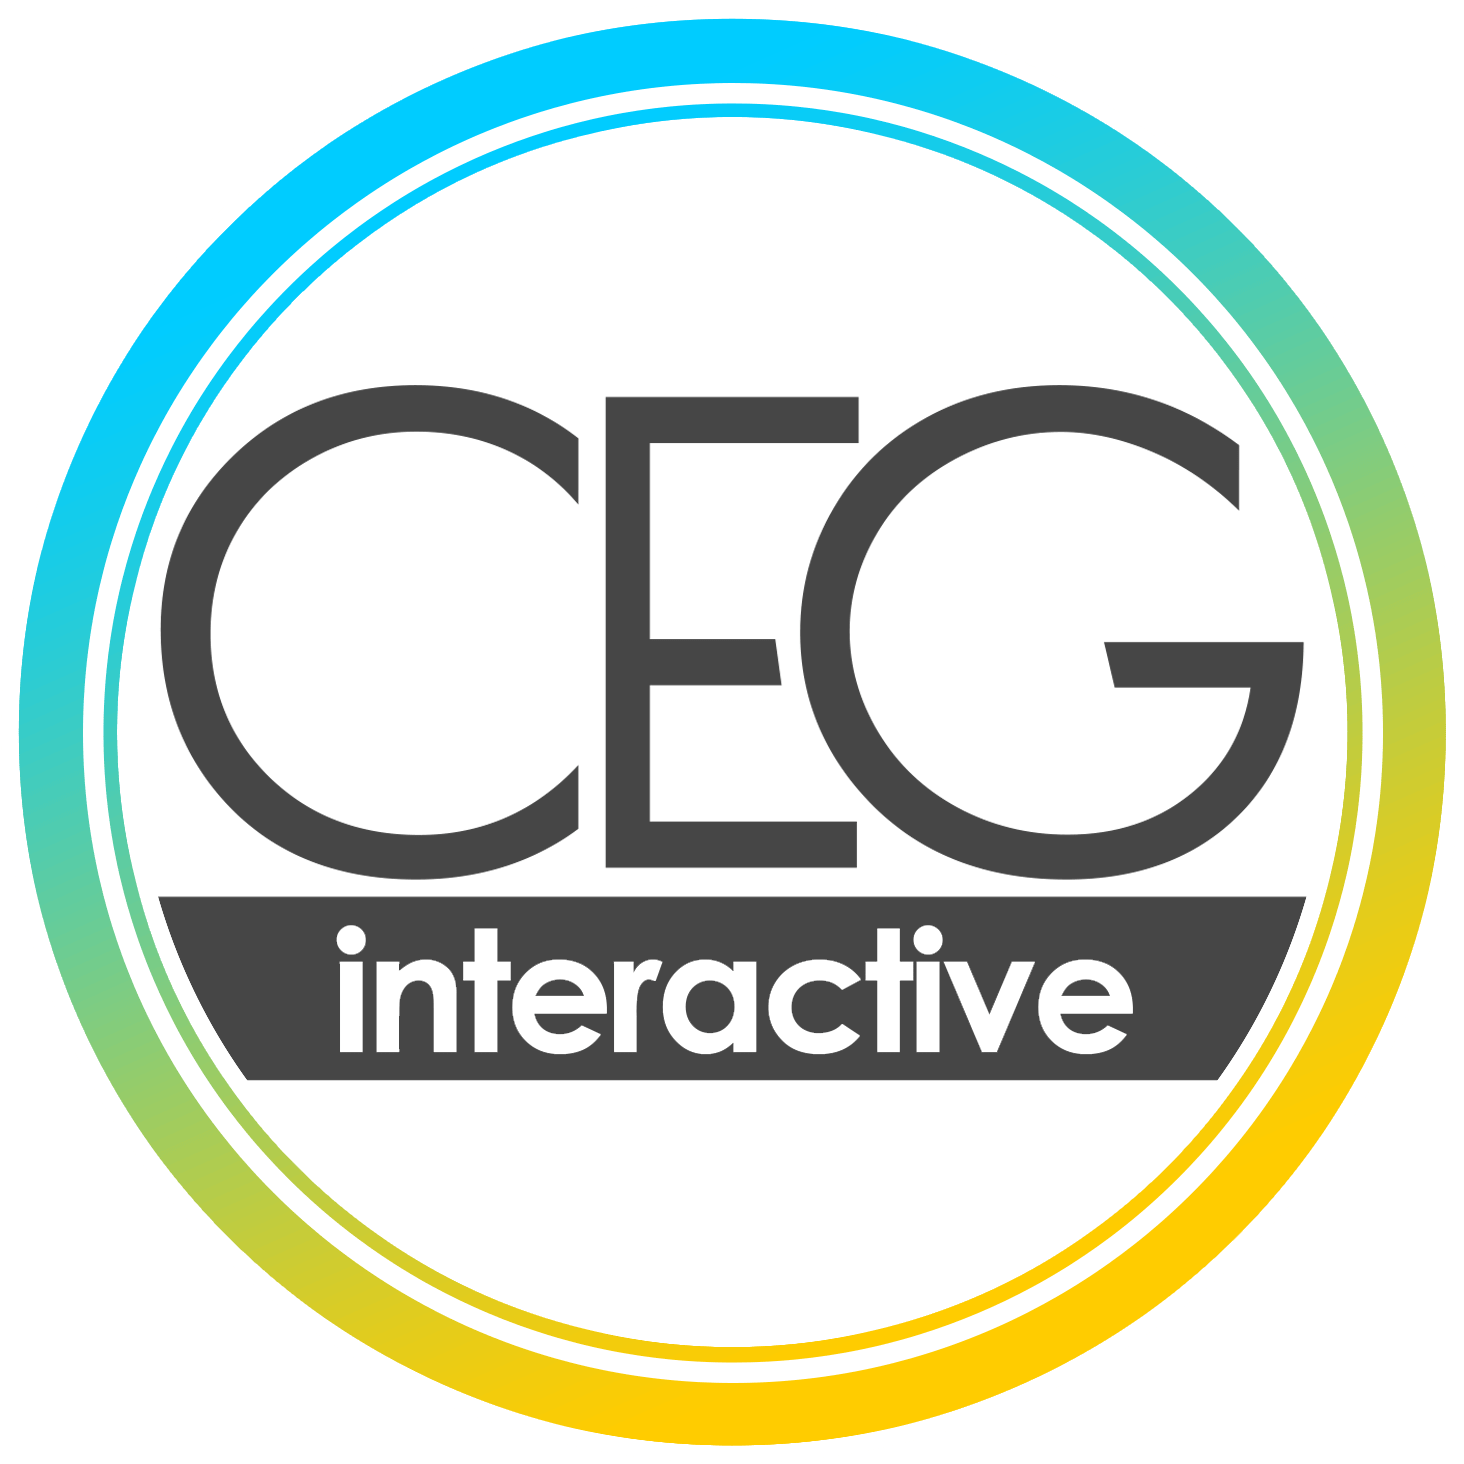 CEG Interactive Photo Booth Rental